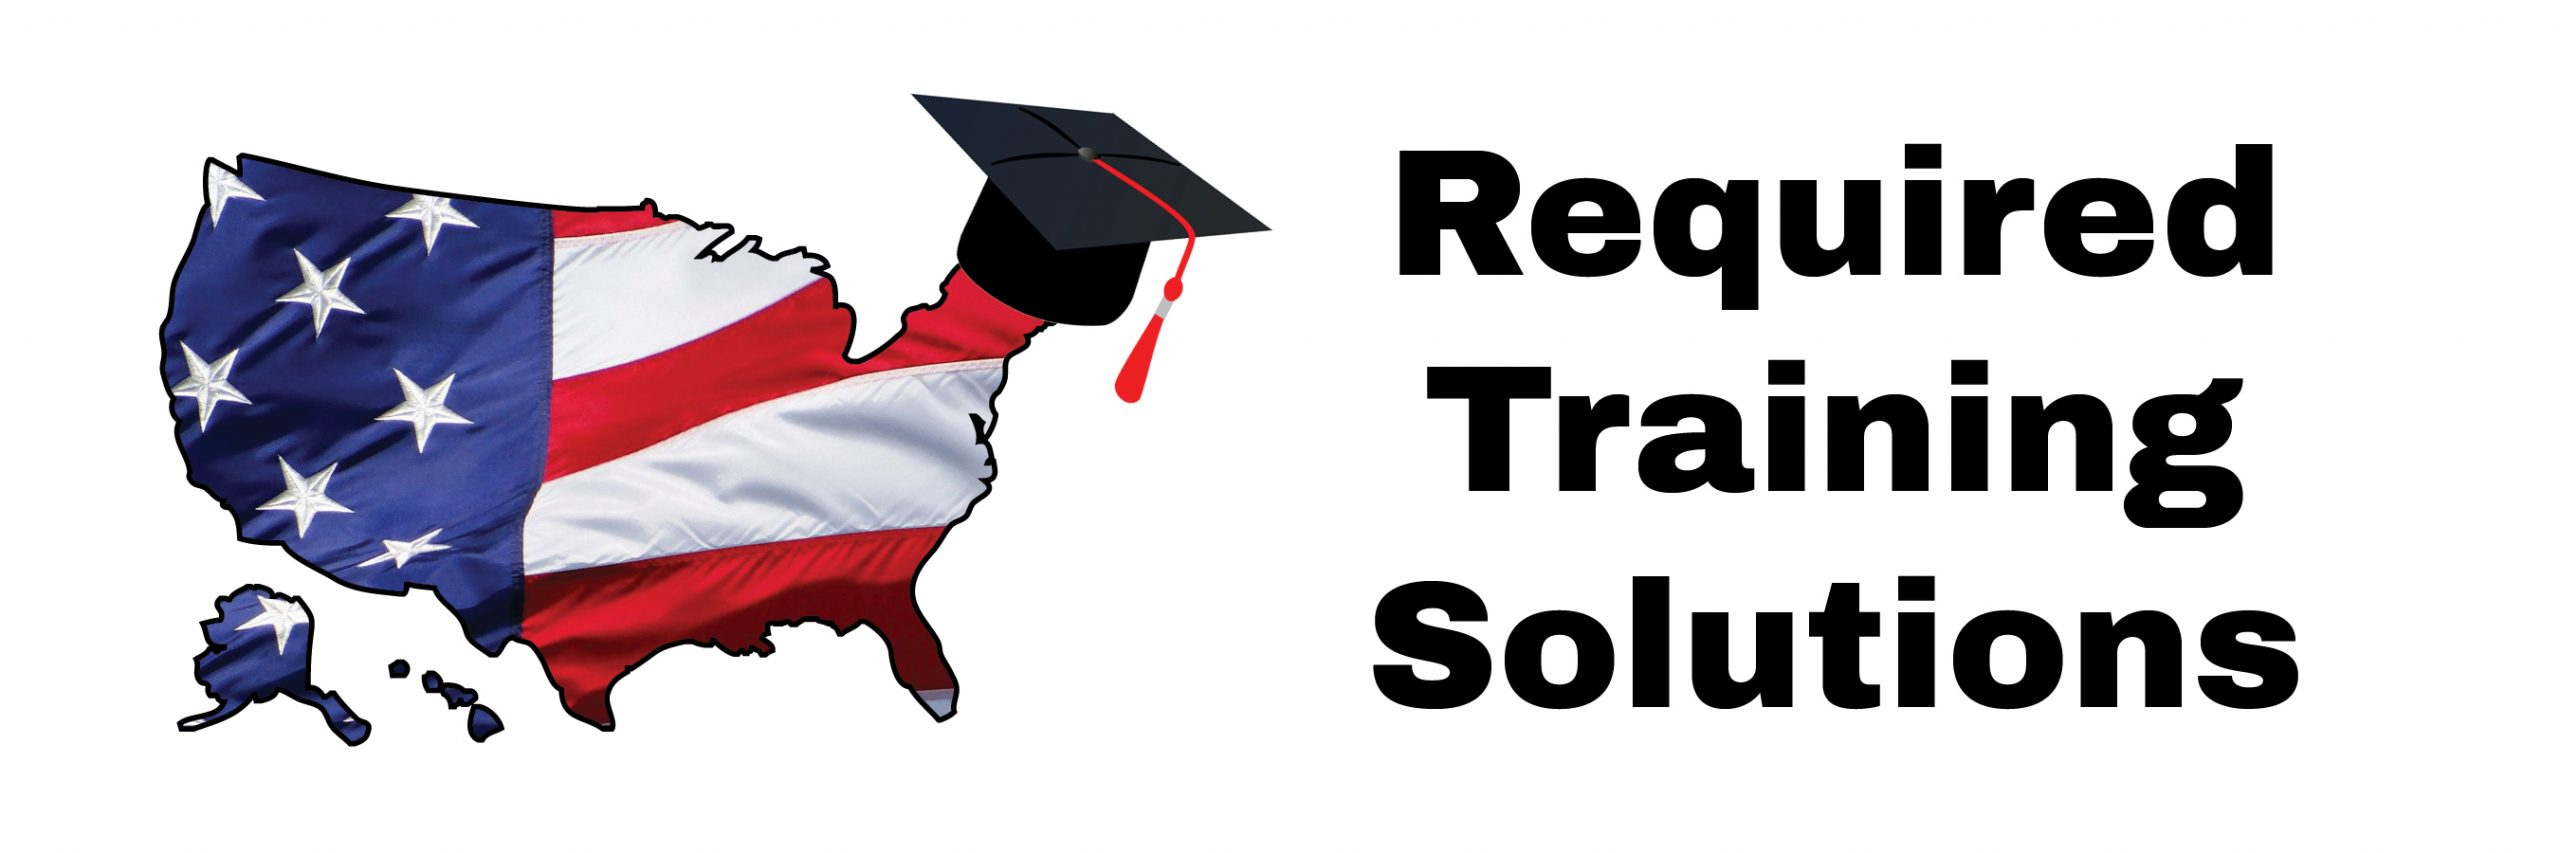 Required Training Solutions